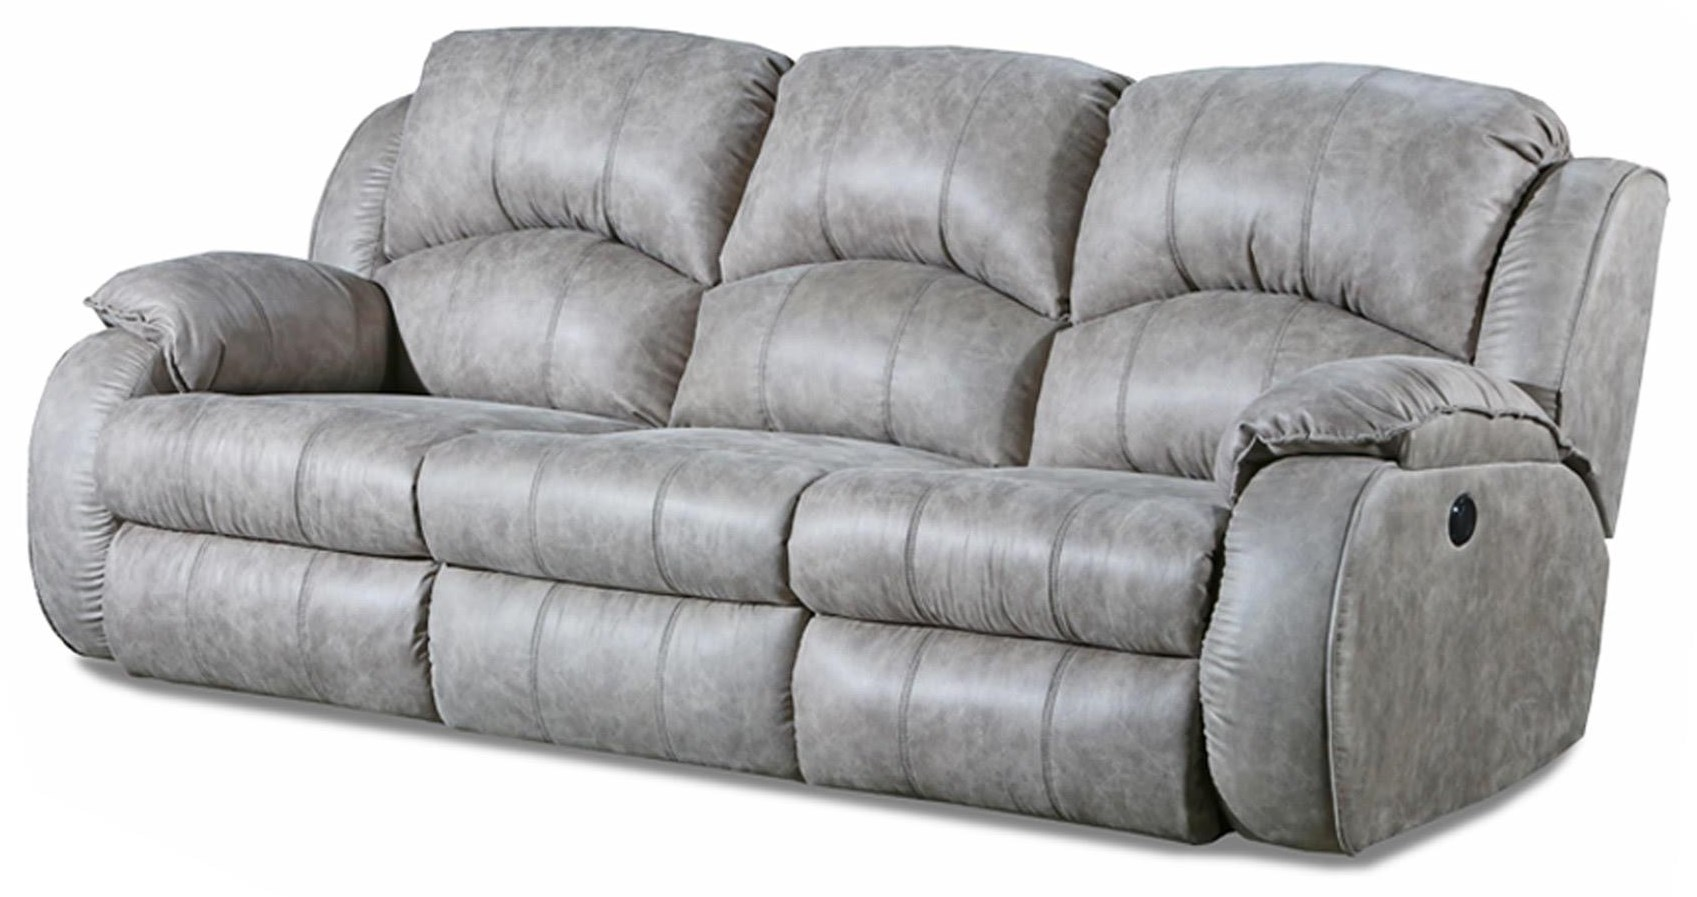 Southern Motion 705 173 09 705 61p 173 09 Power Sofa Furniture